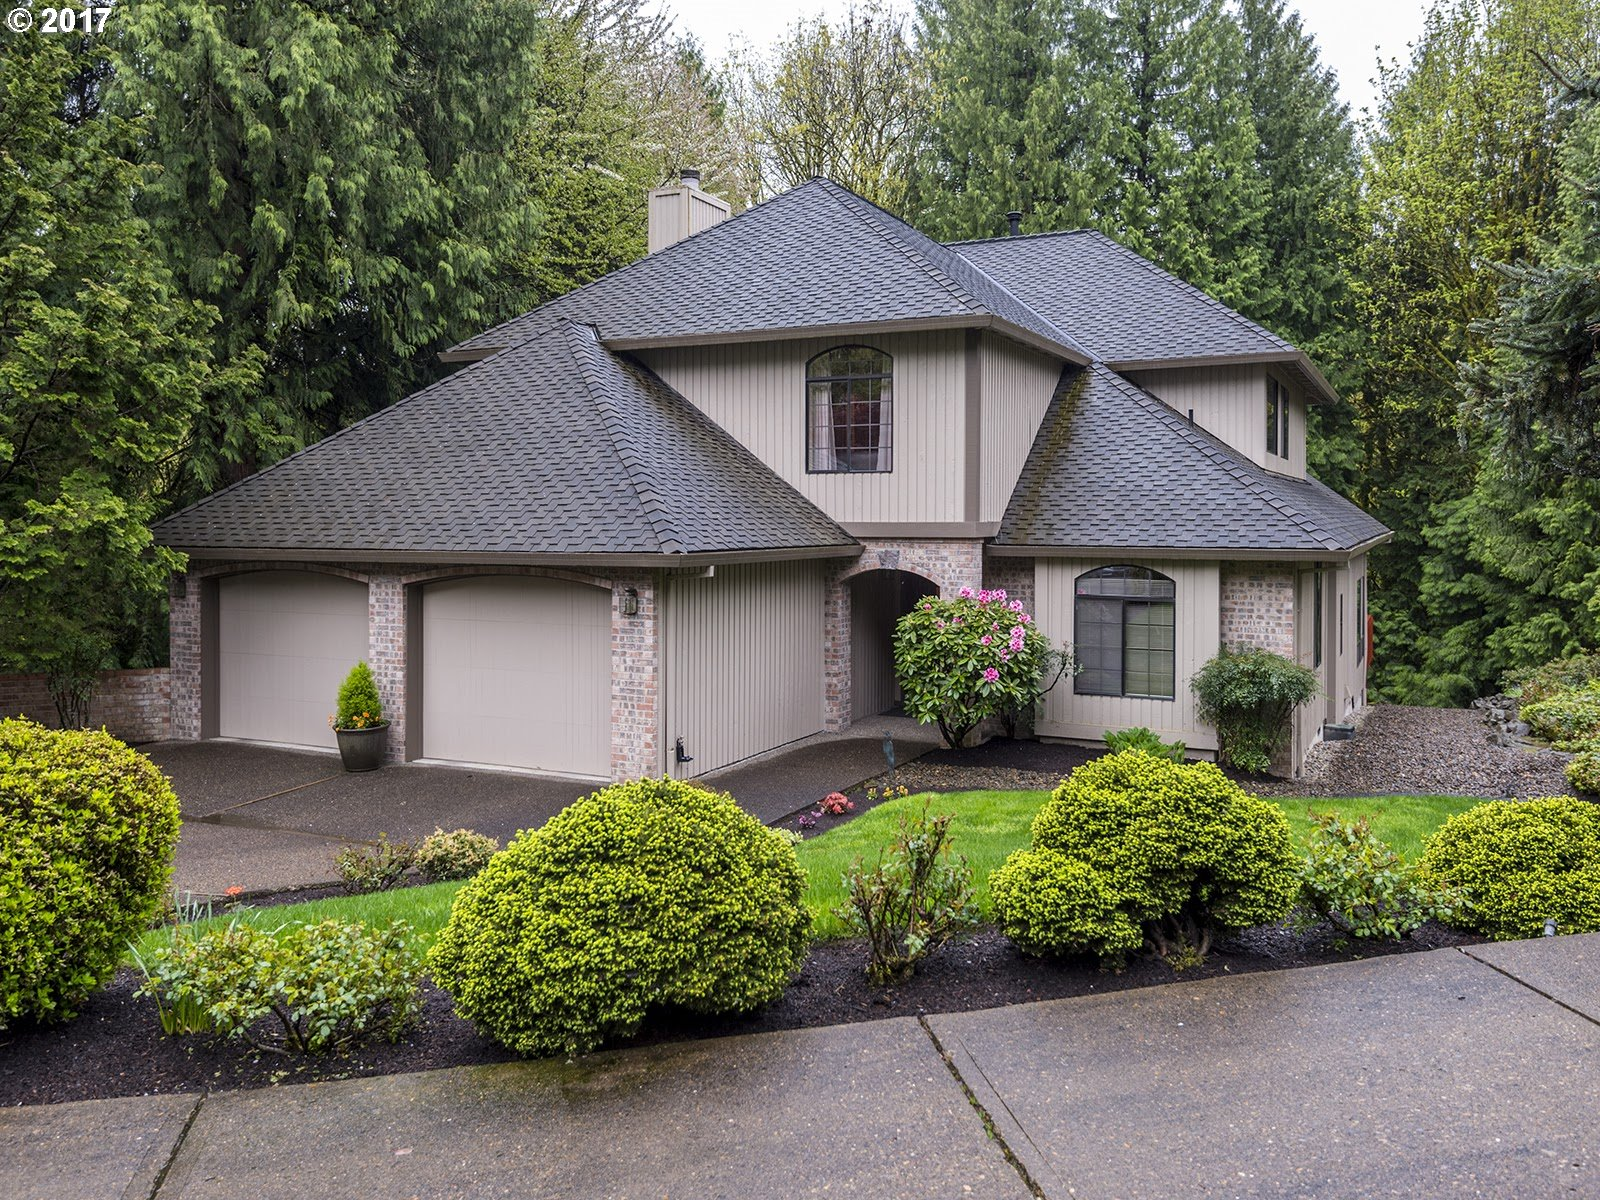 13283 FOX RUN, Lake Oswego, OR 97034